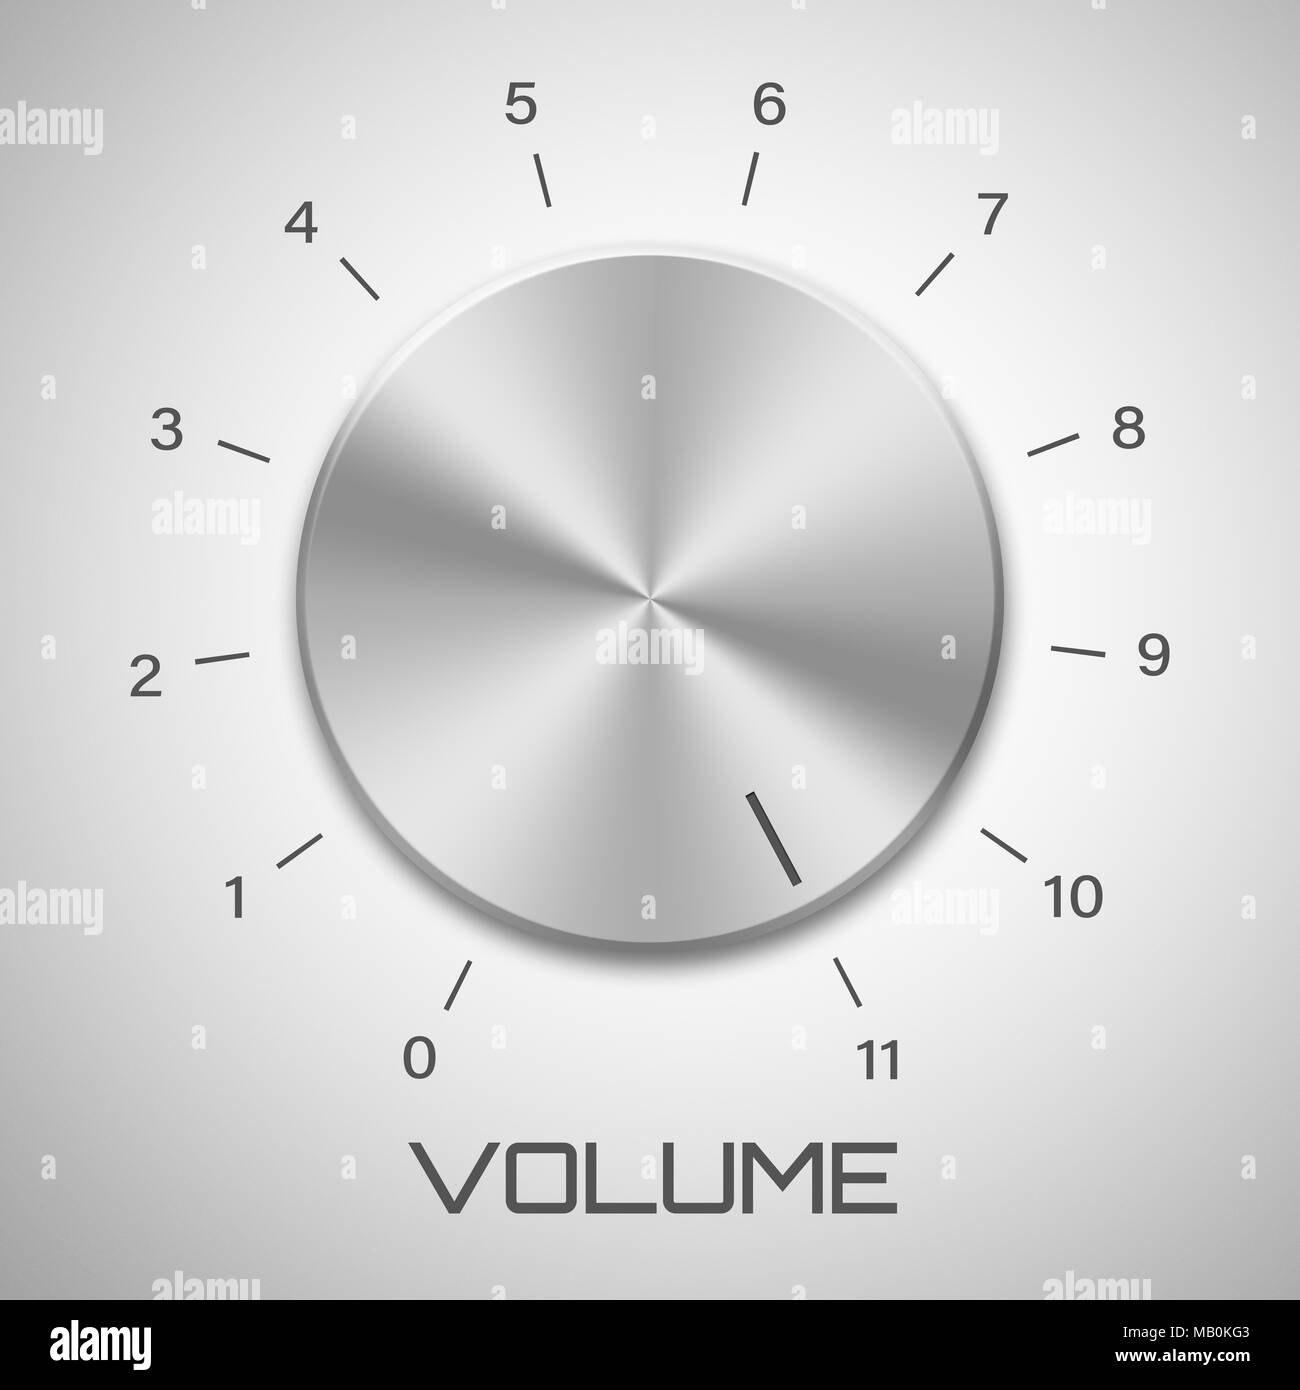 Metal volume control knob that goes to eleven - Stock Image